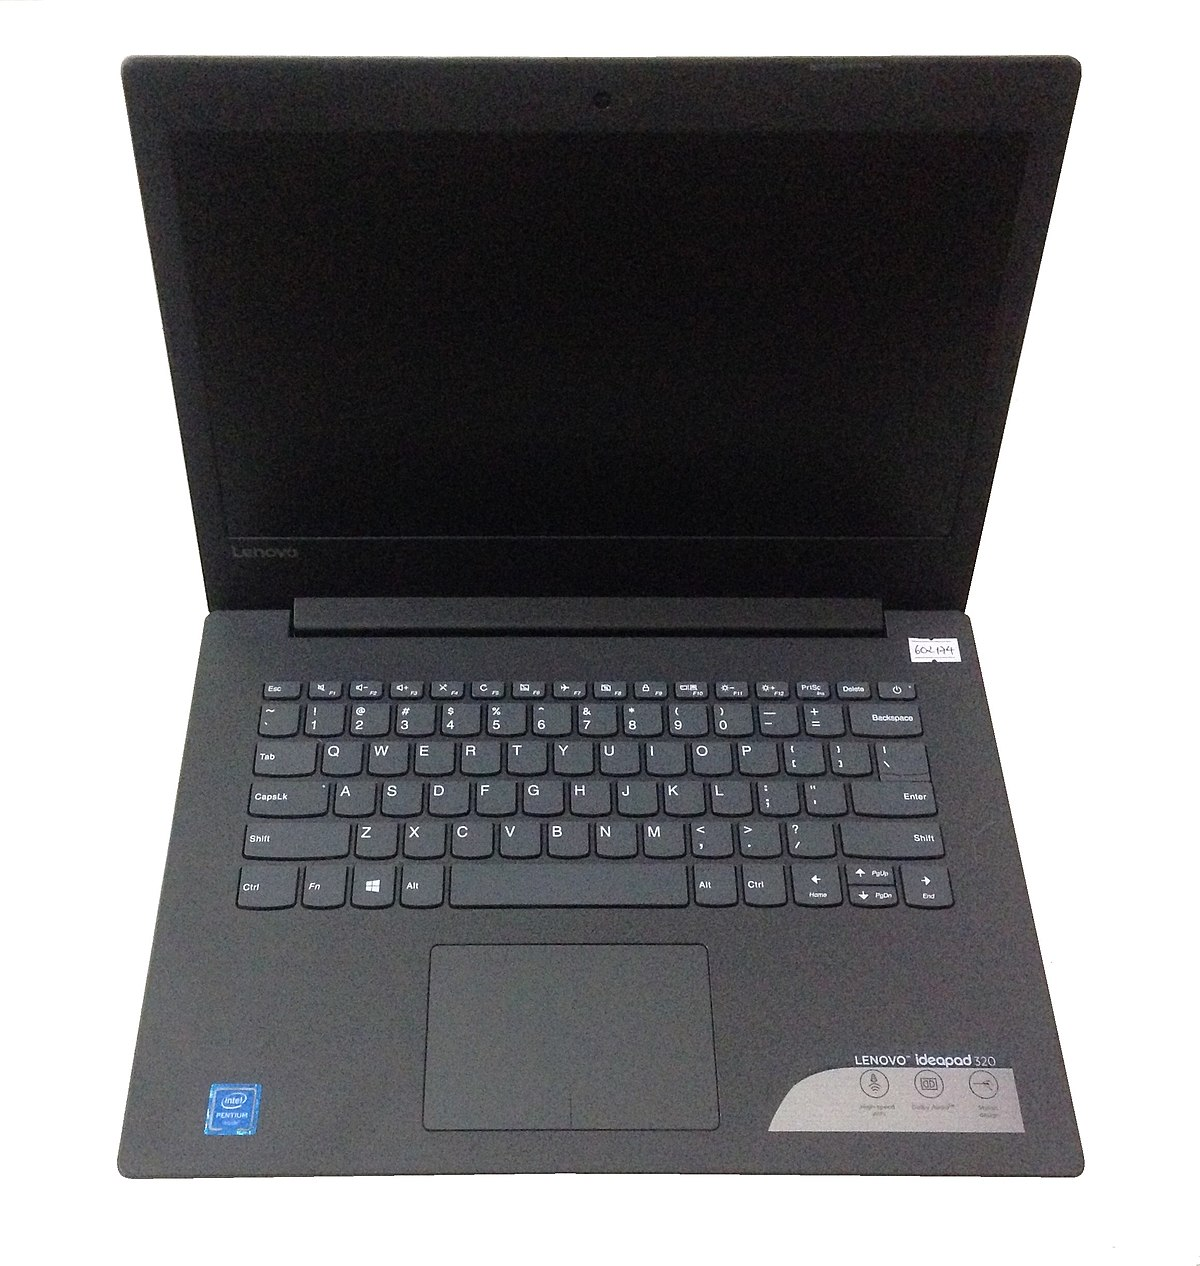 Lenovo ThinkPad G40 SoundMax Audio Windows